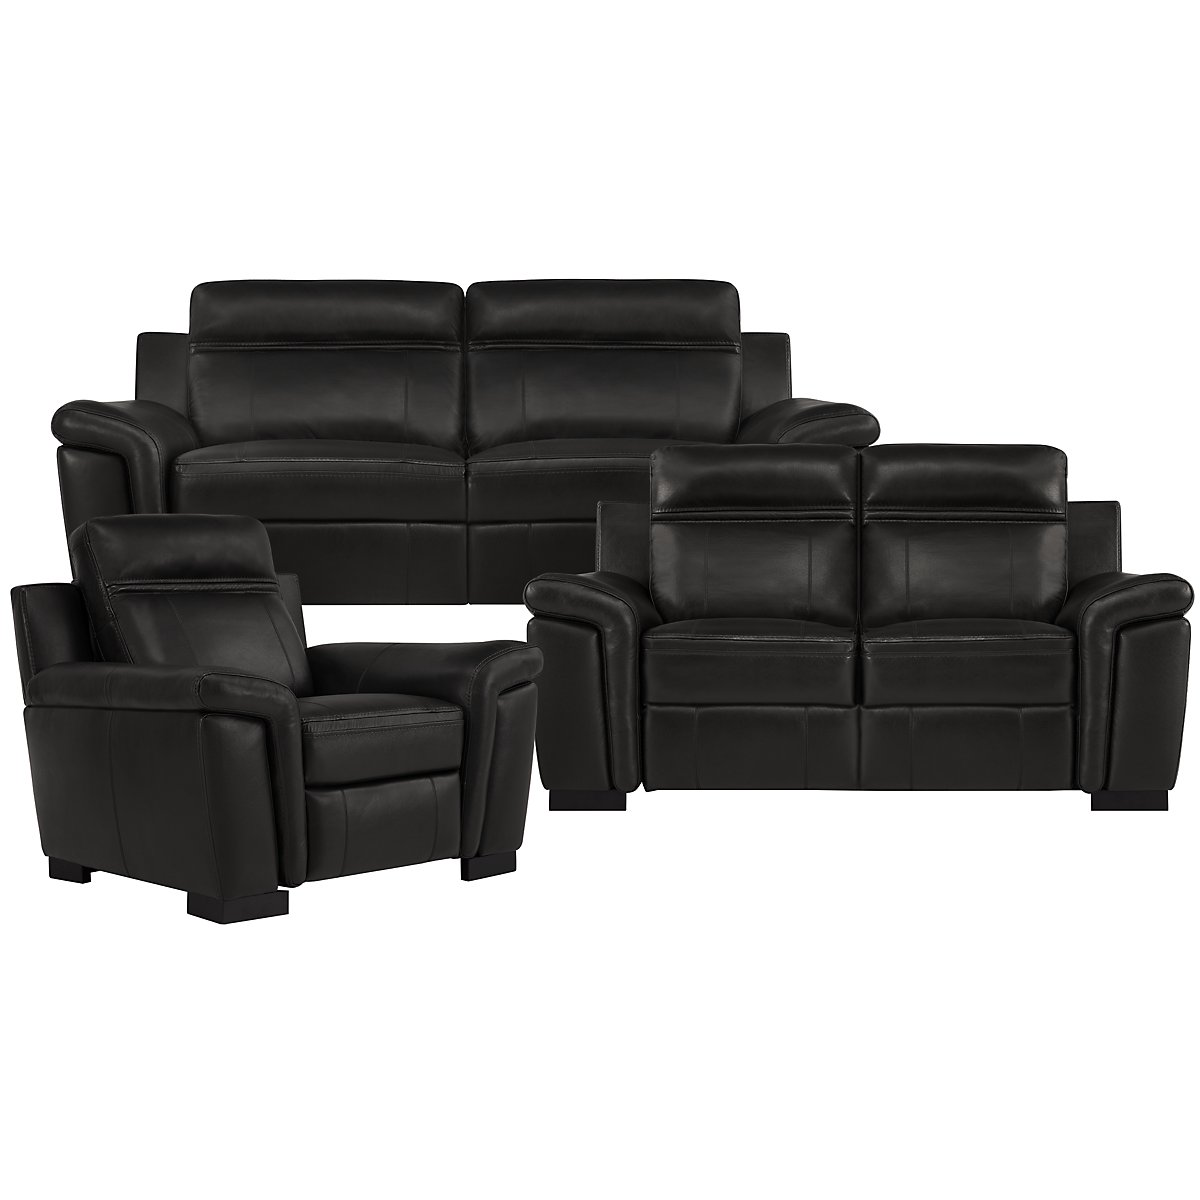 Albany Black Leather & Vinyl Manually Reclining Living Room